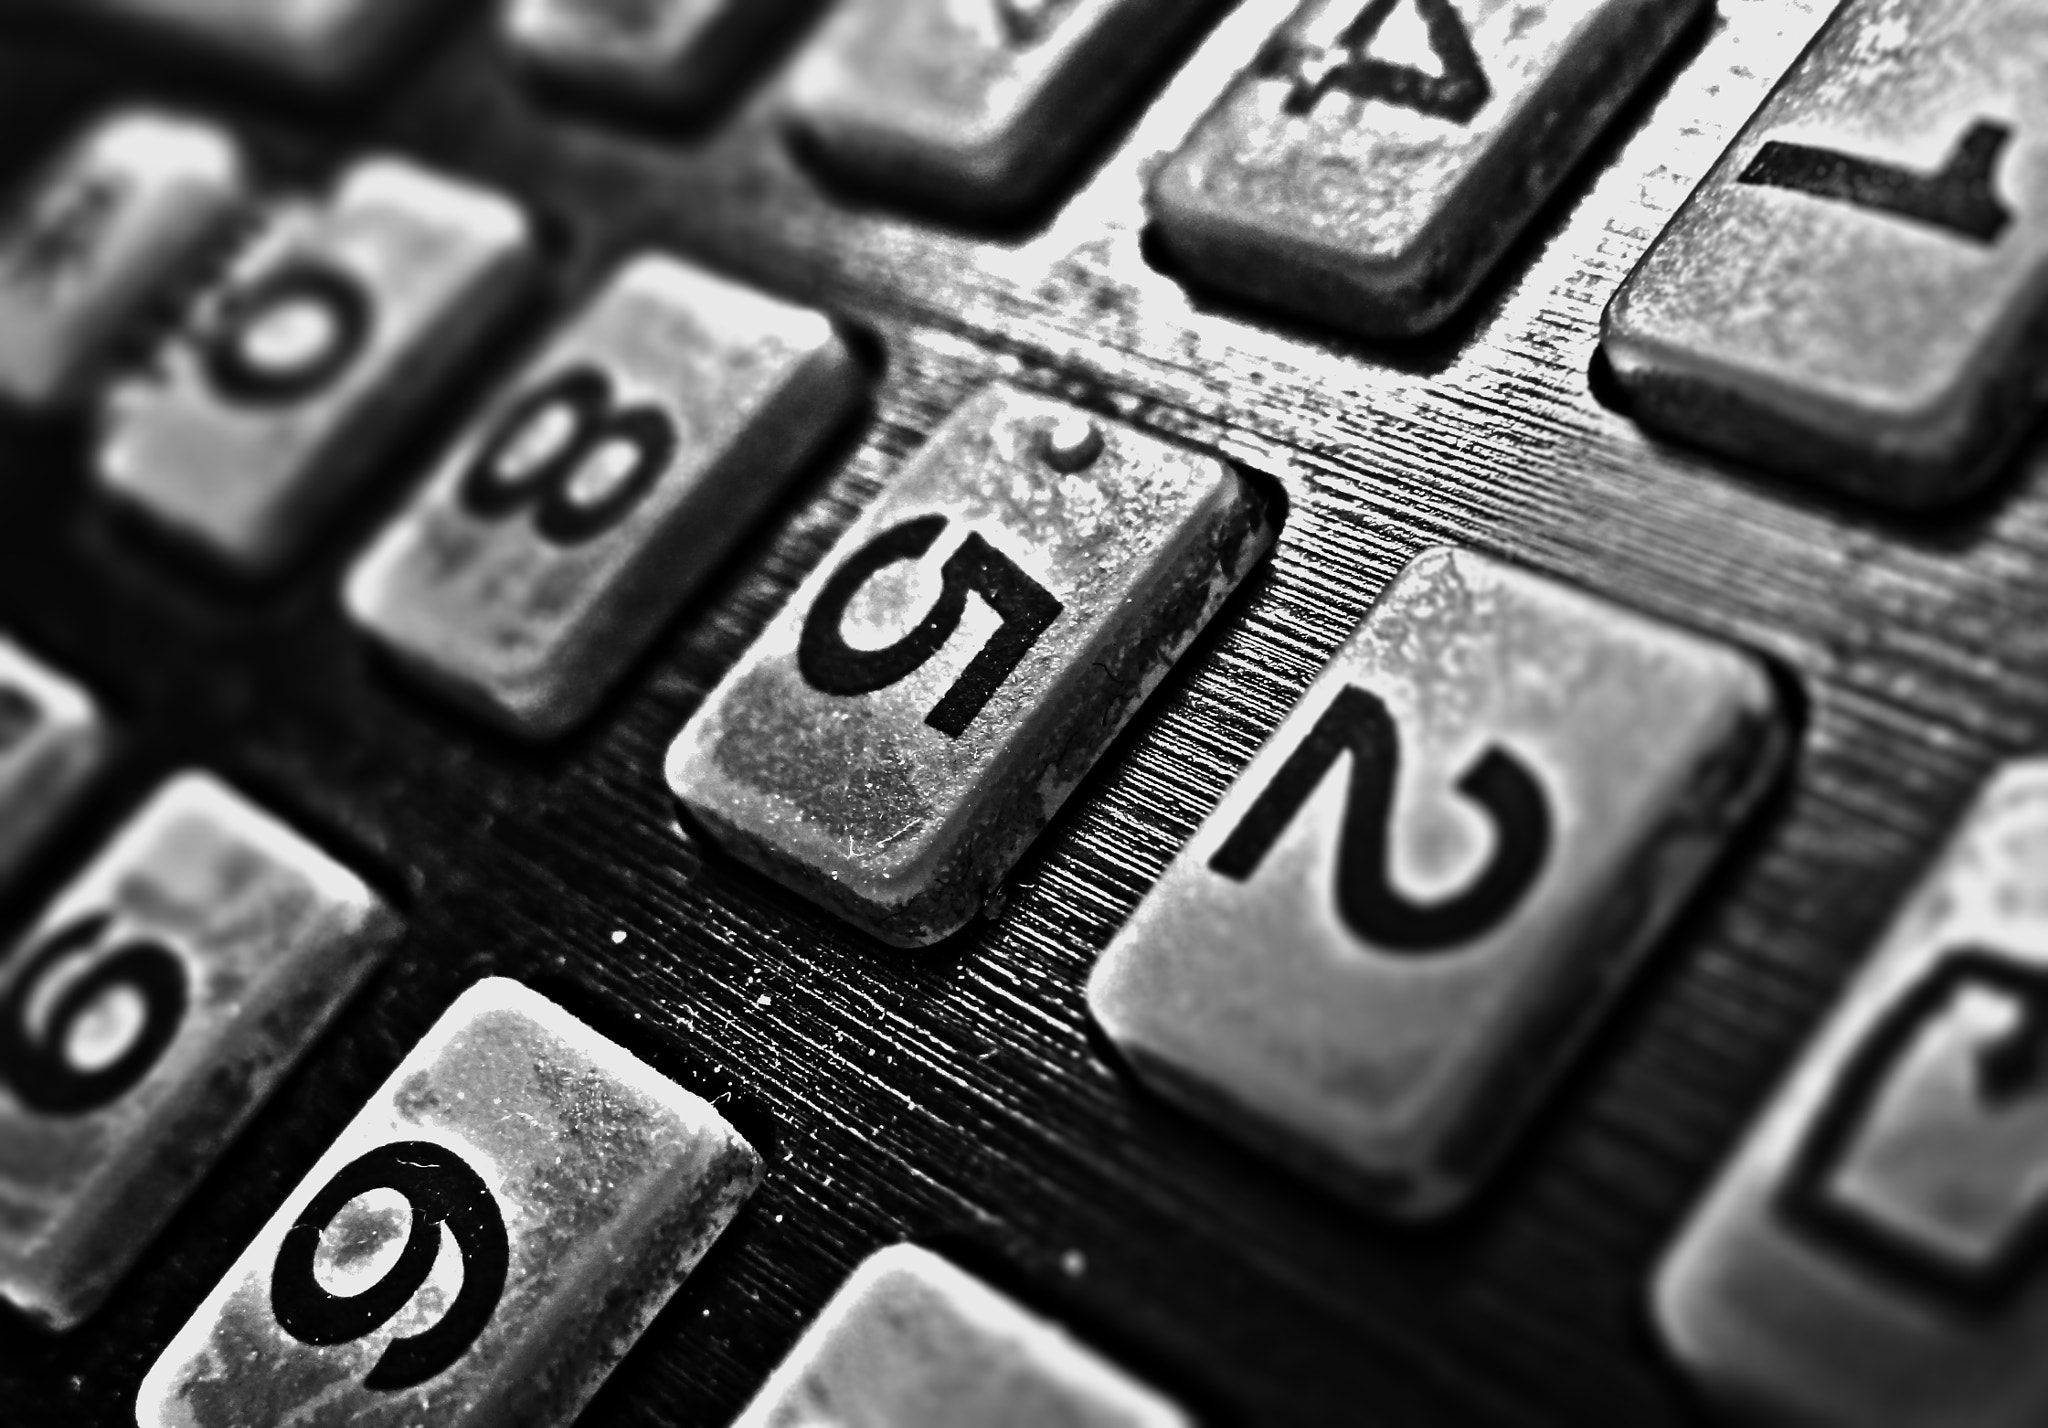 Photograph Numbers - HDR by Akshun Babbar on 500px